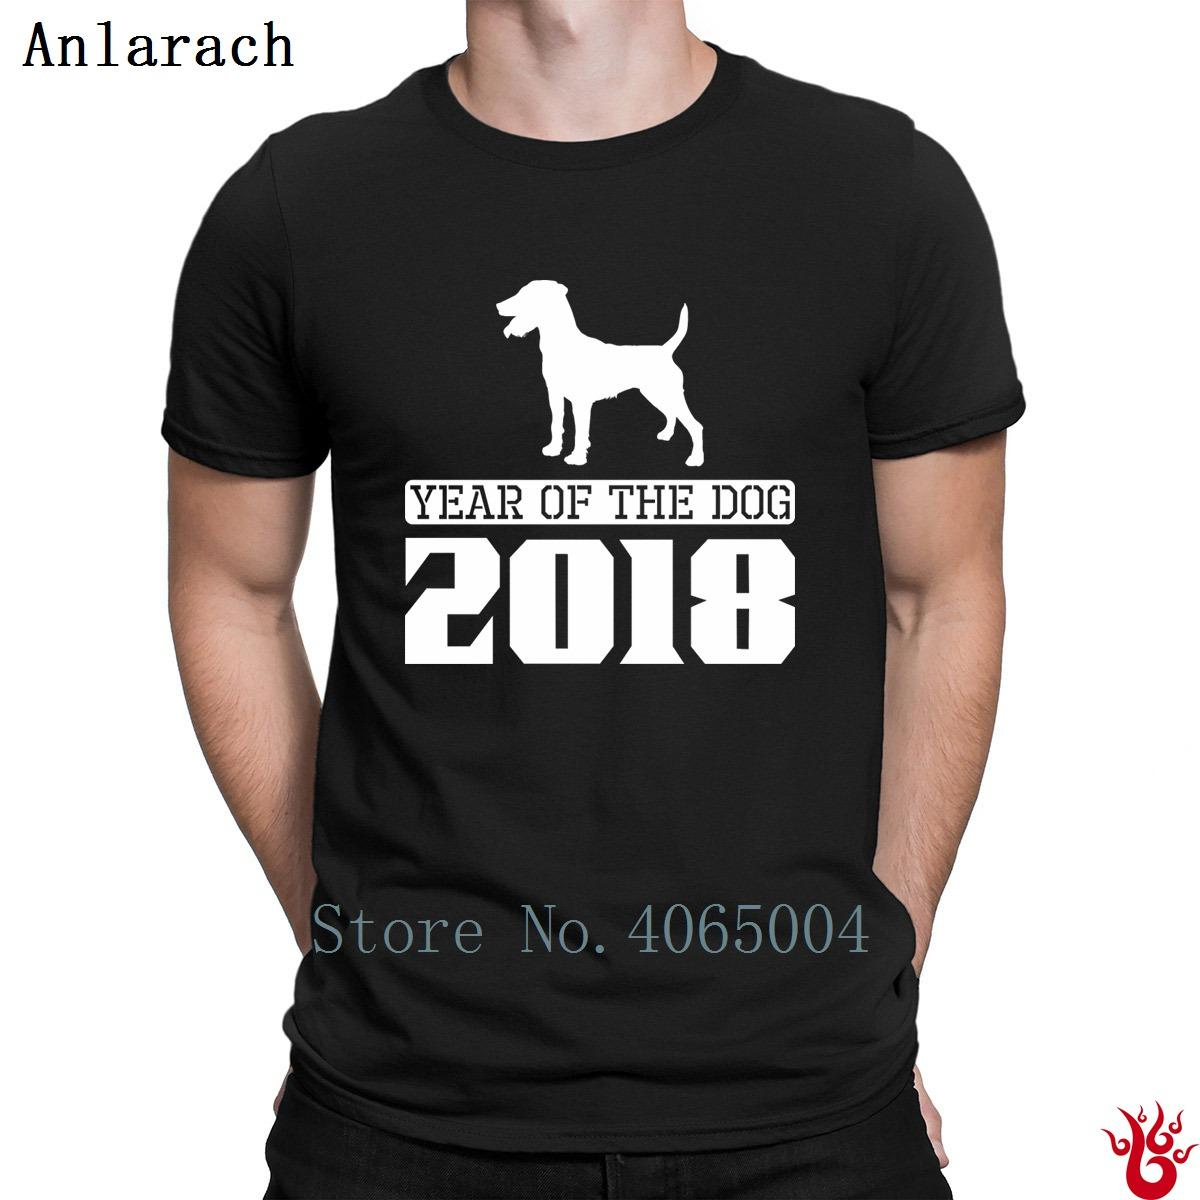 Patterdale Year Of The Dog 2018 T-Shirt Hip Hop Design Sunlight Costume Tshirt per uomo 2018 S-Xxxl Humor 100% cotone formale